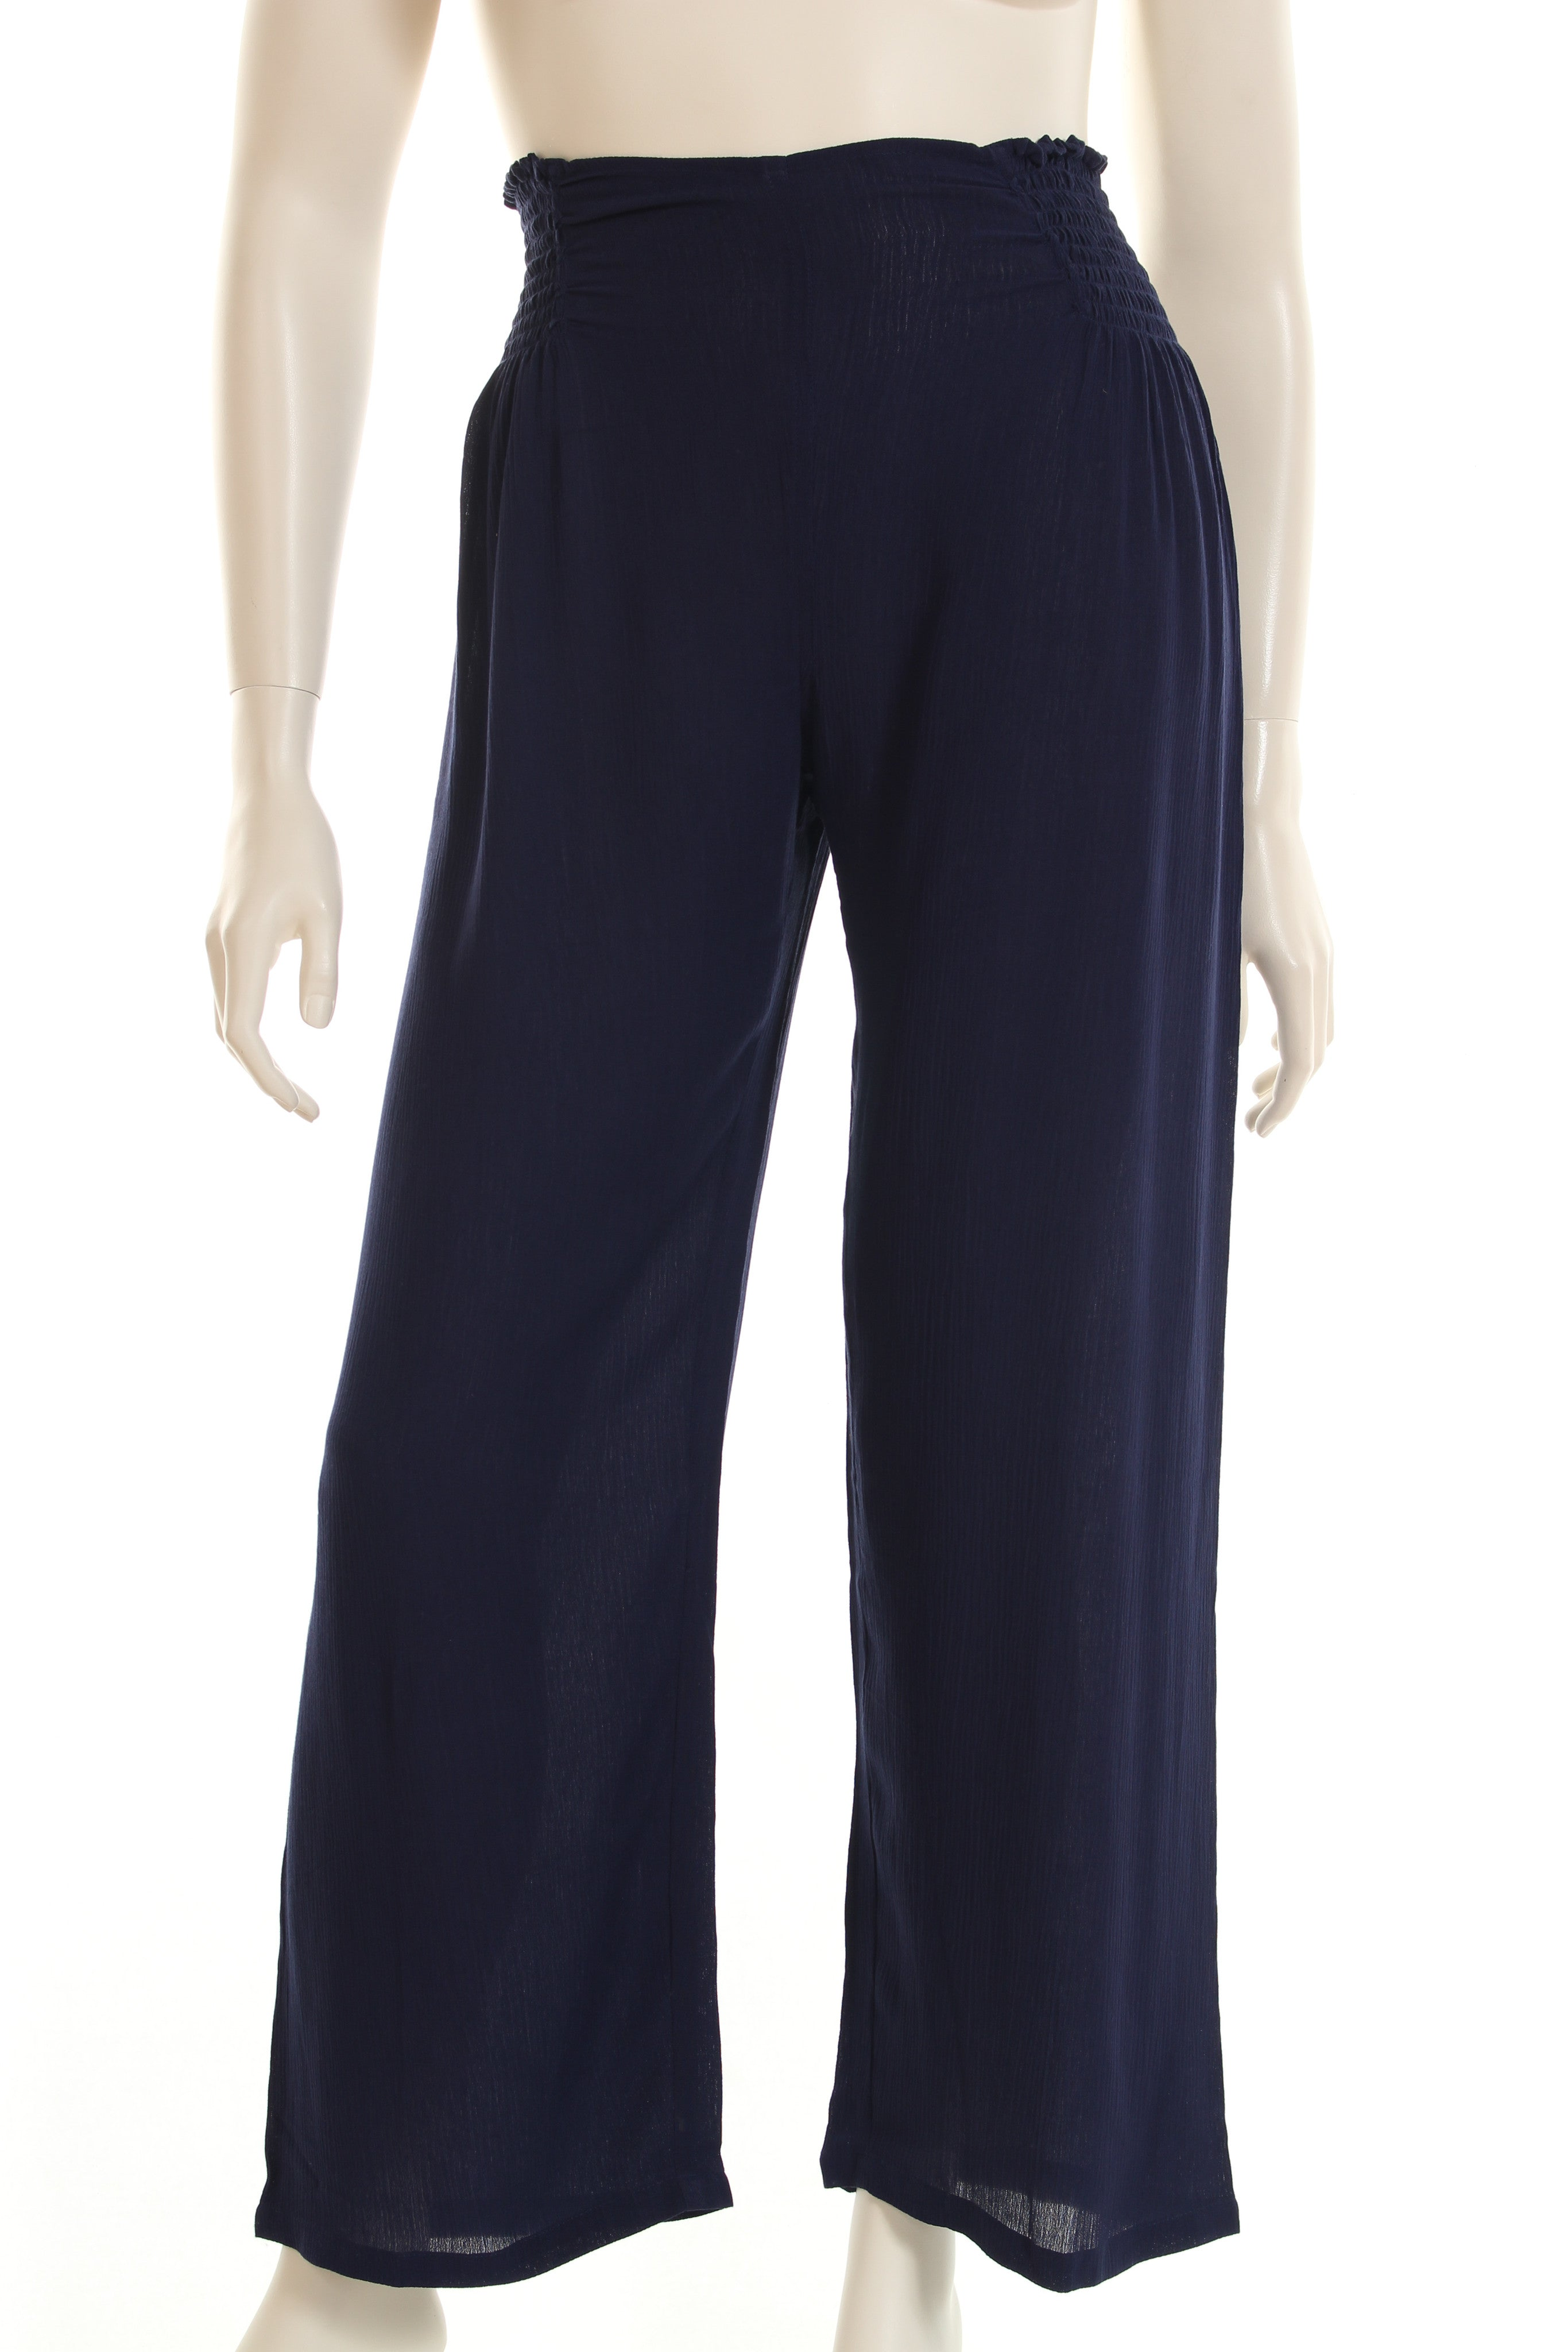 AC4050 Pant long elasticated sides in waist wide leg